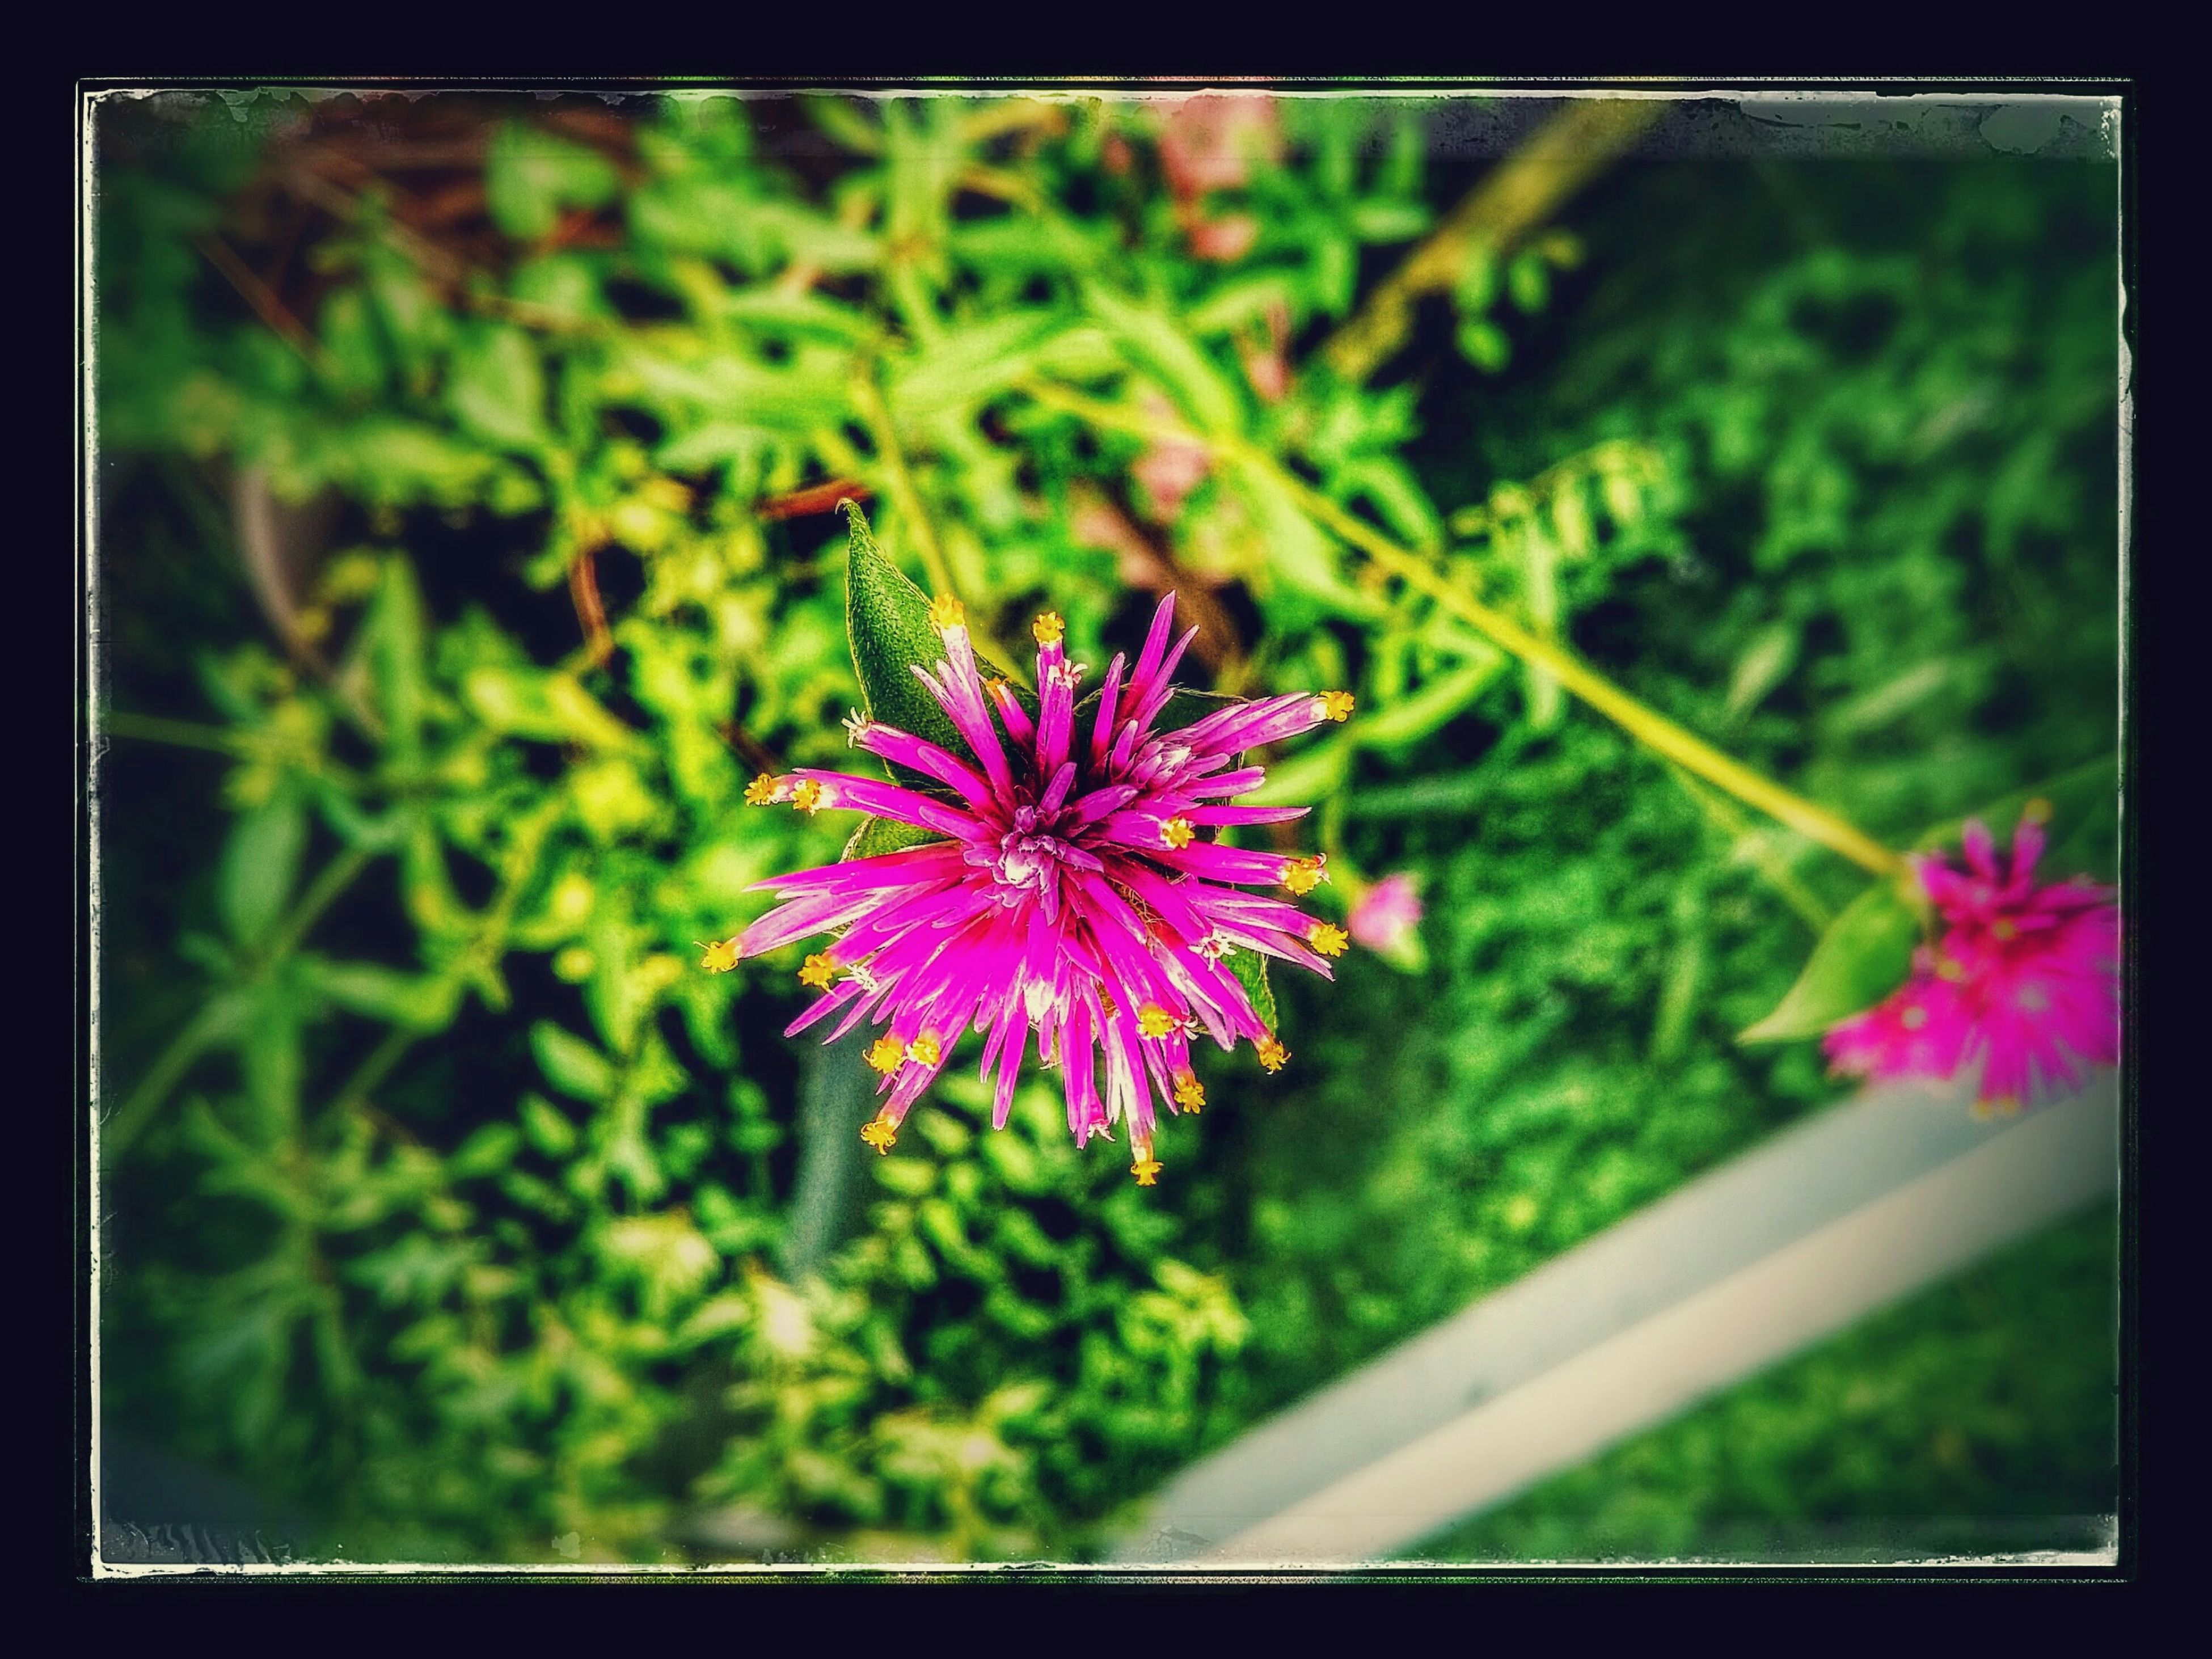 flower, freshness, fragility, petal, growth, transfer print, flower head, pink color, beauty in nature, blooming, nature, auto post production filter, plant, focus on foreground, close-up, purple, in bloom, blossom, pink, park - man made space